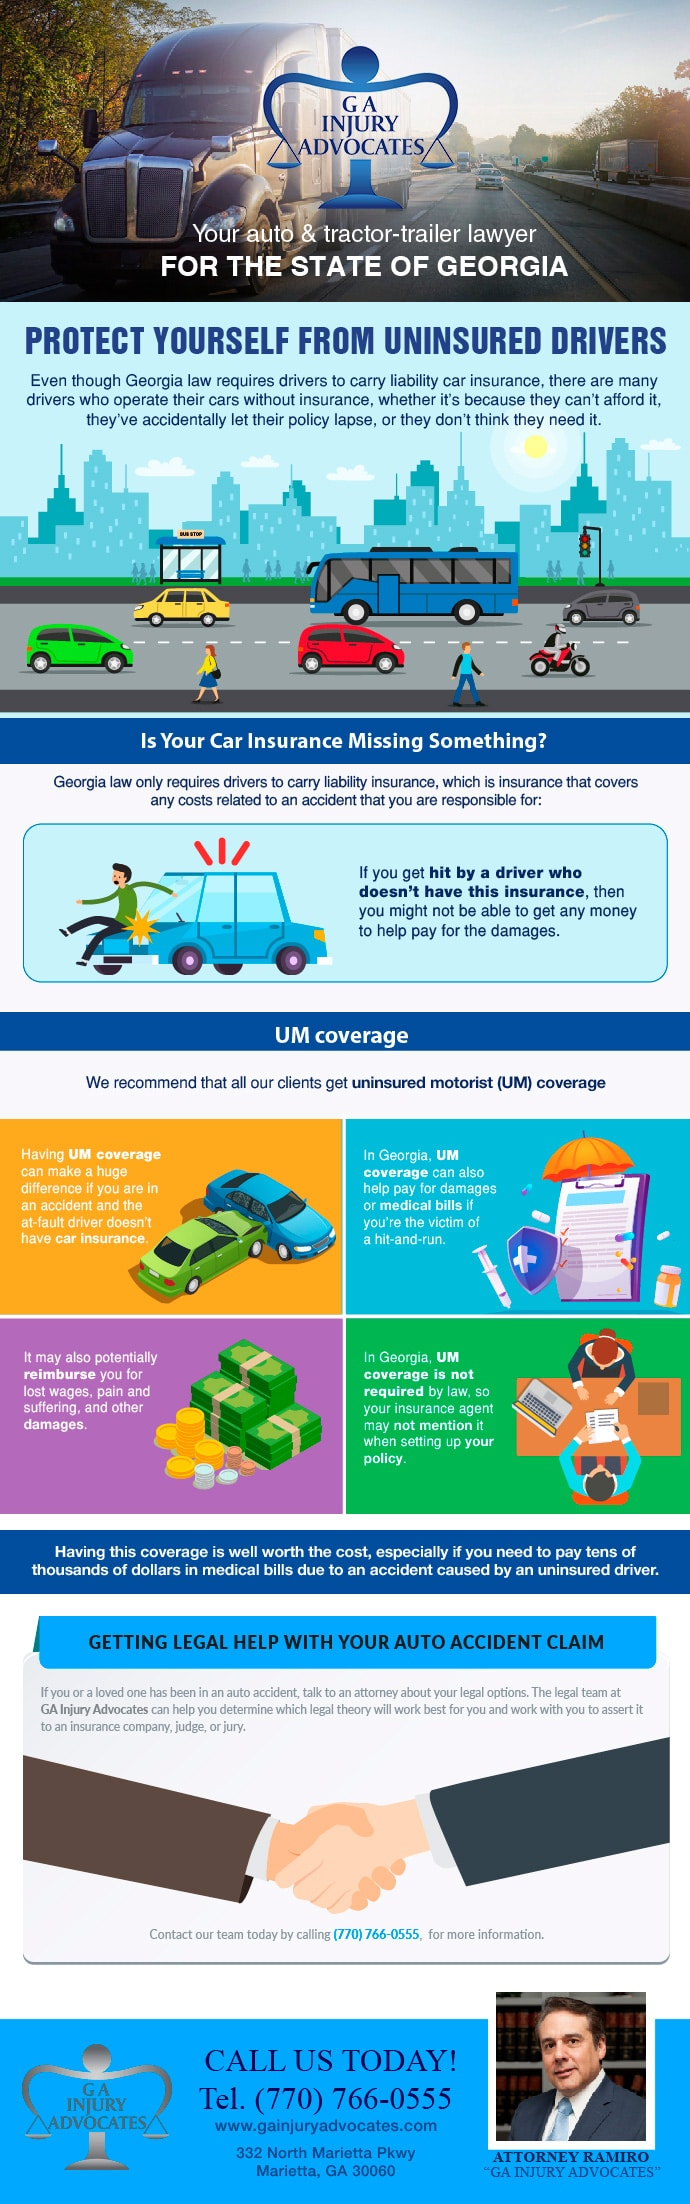 Protect Yourself From Uninsured Drivers